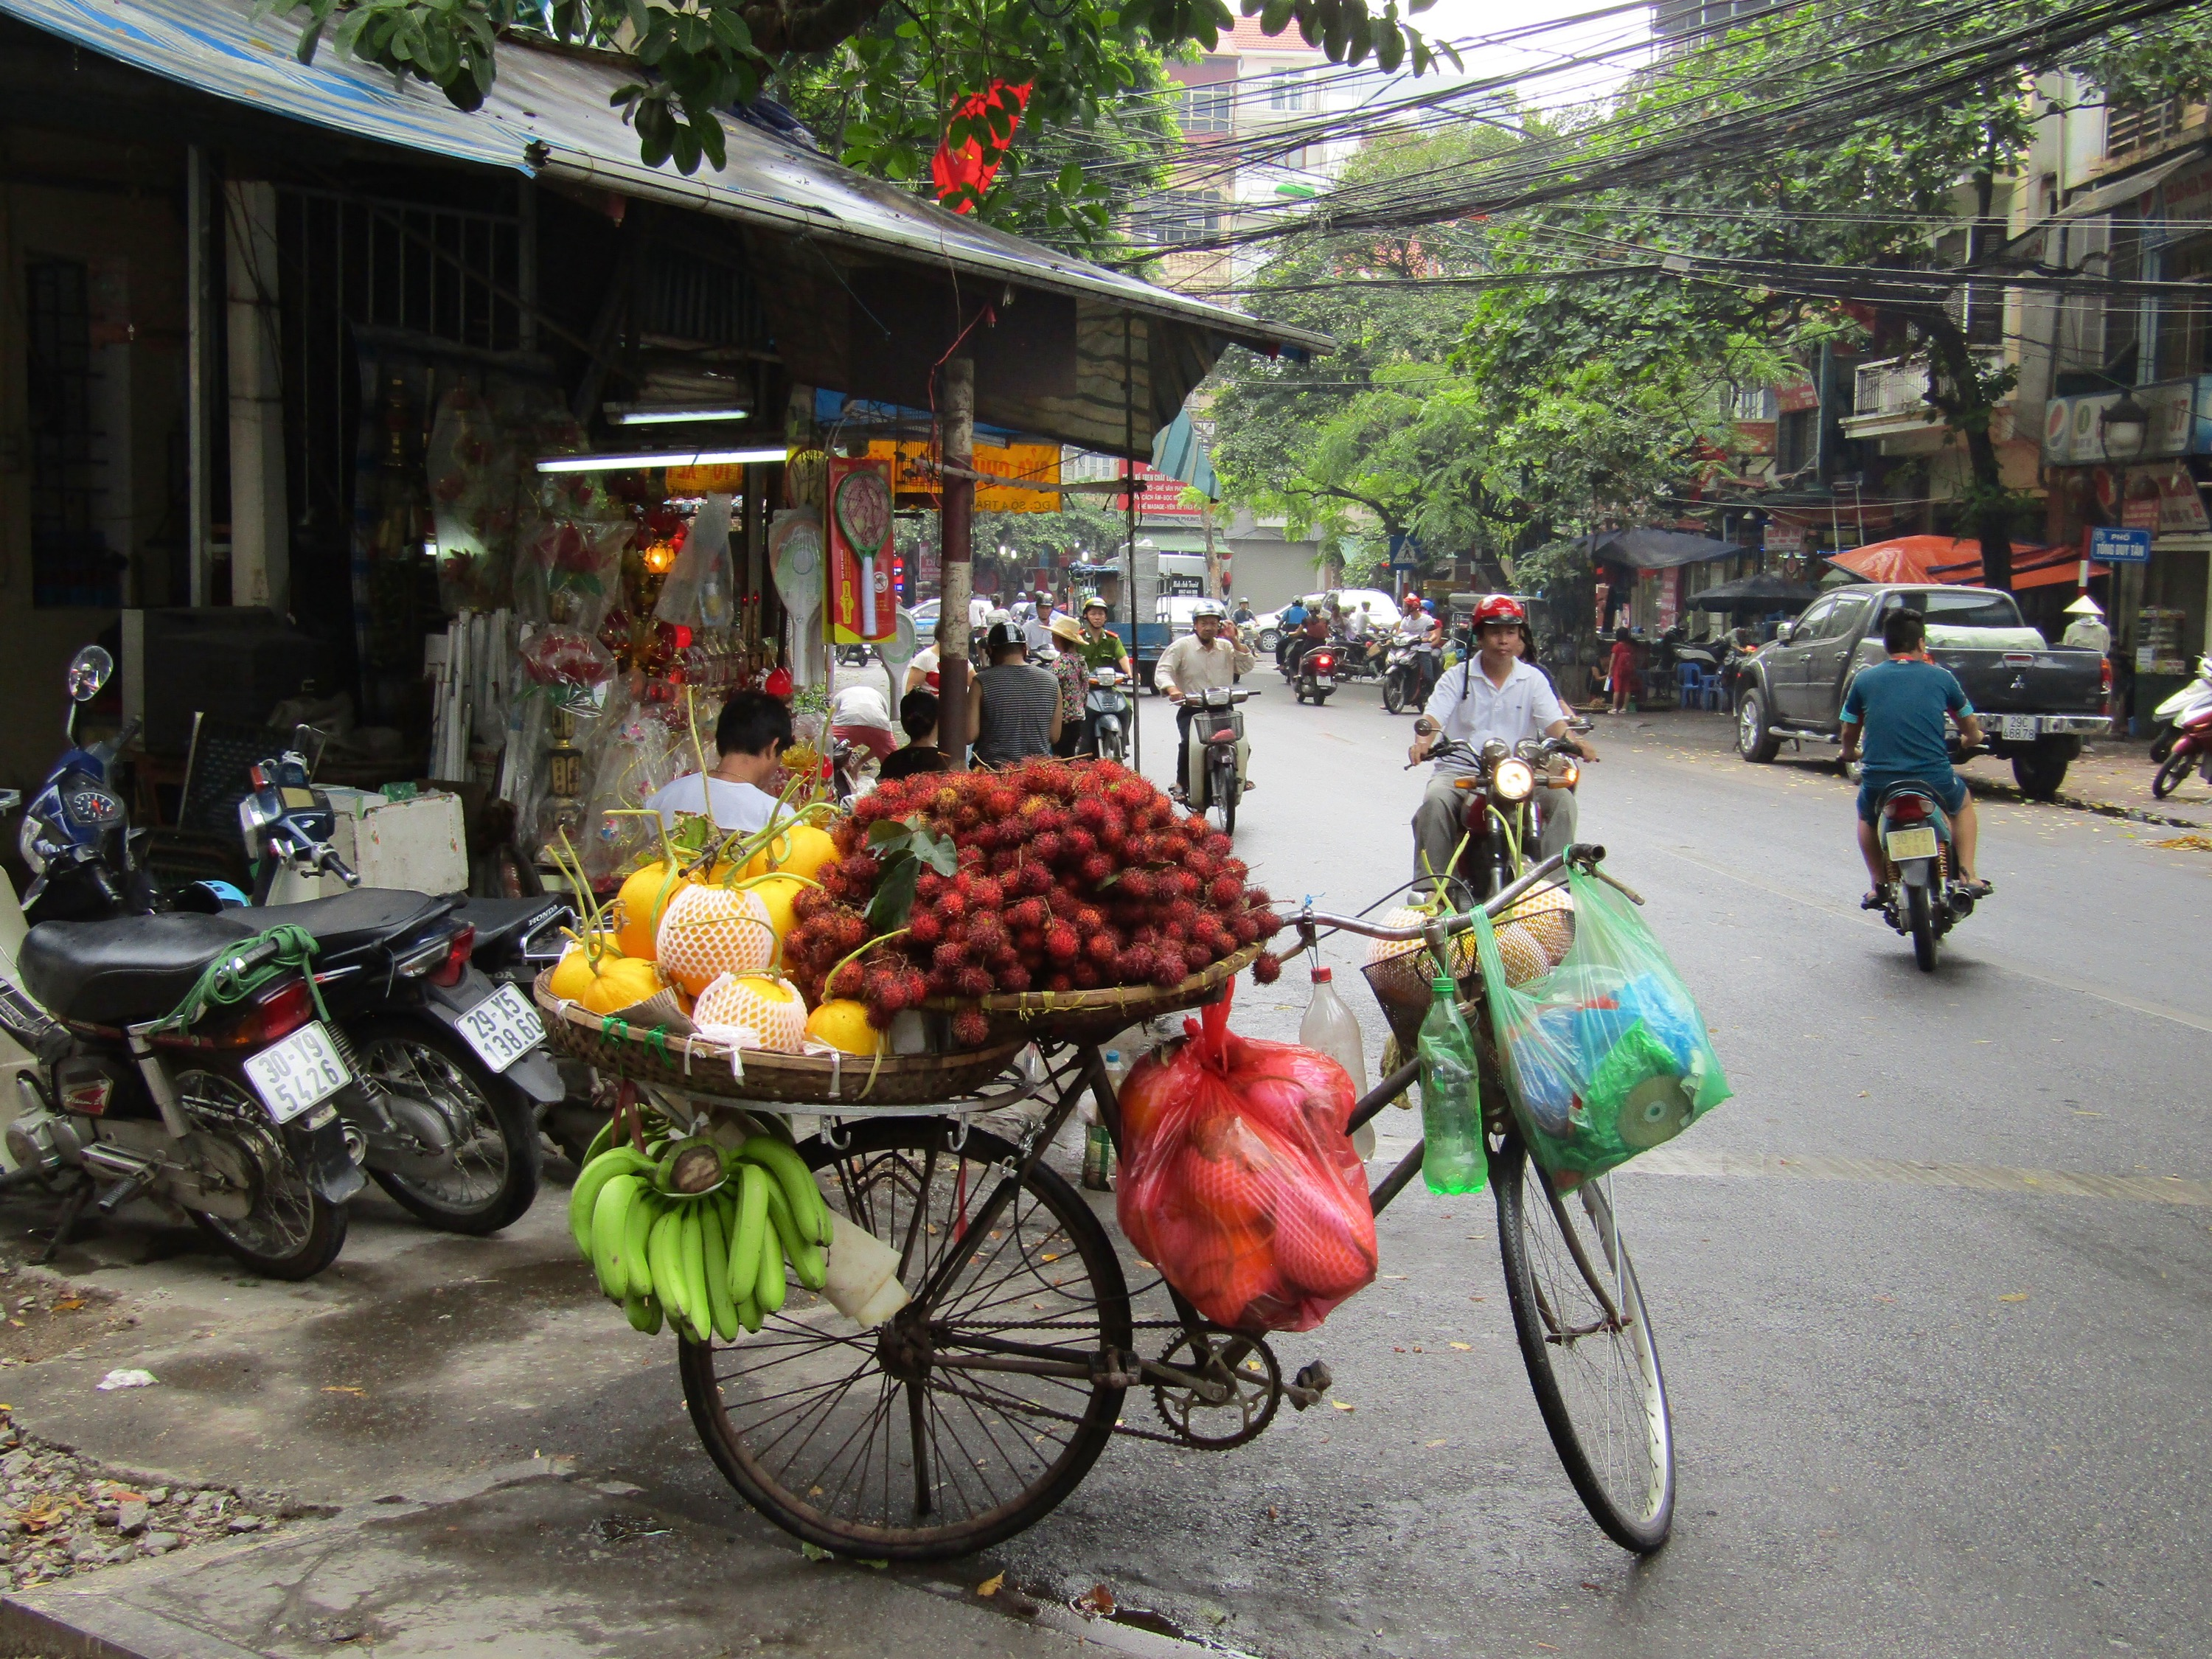 A parked bicycle is transformed into a fruit stand on a sidewalk on the outskirts of the Old Quarter shops.